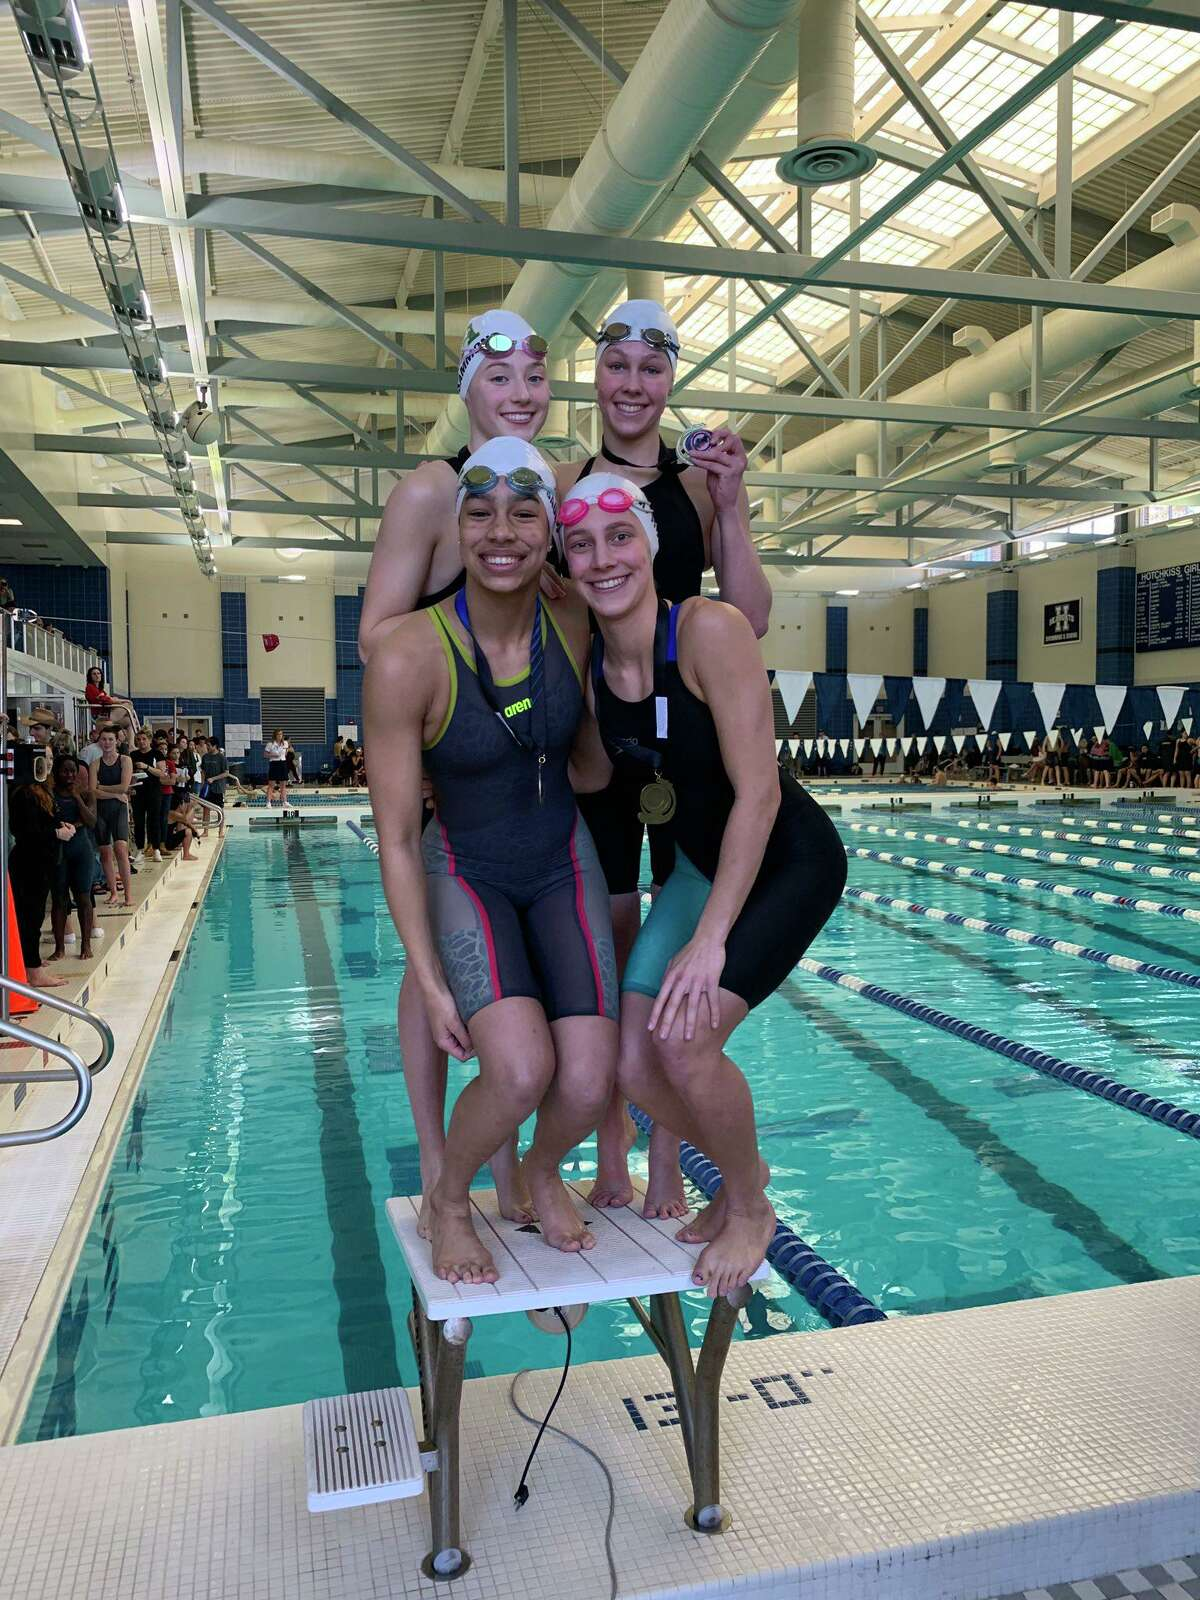 Greenwich Academy's 200-yard freestyle relay team won the title at the NEPSAC Division I Championships on Sunday, March 8, 2020, at Hotchkiss School.